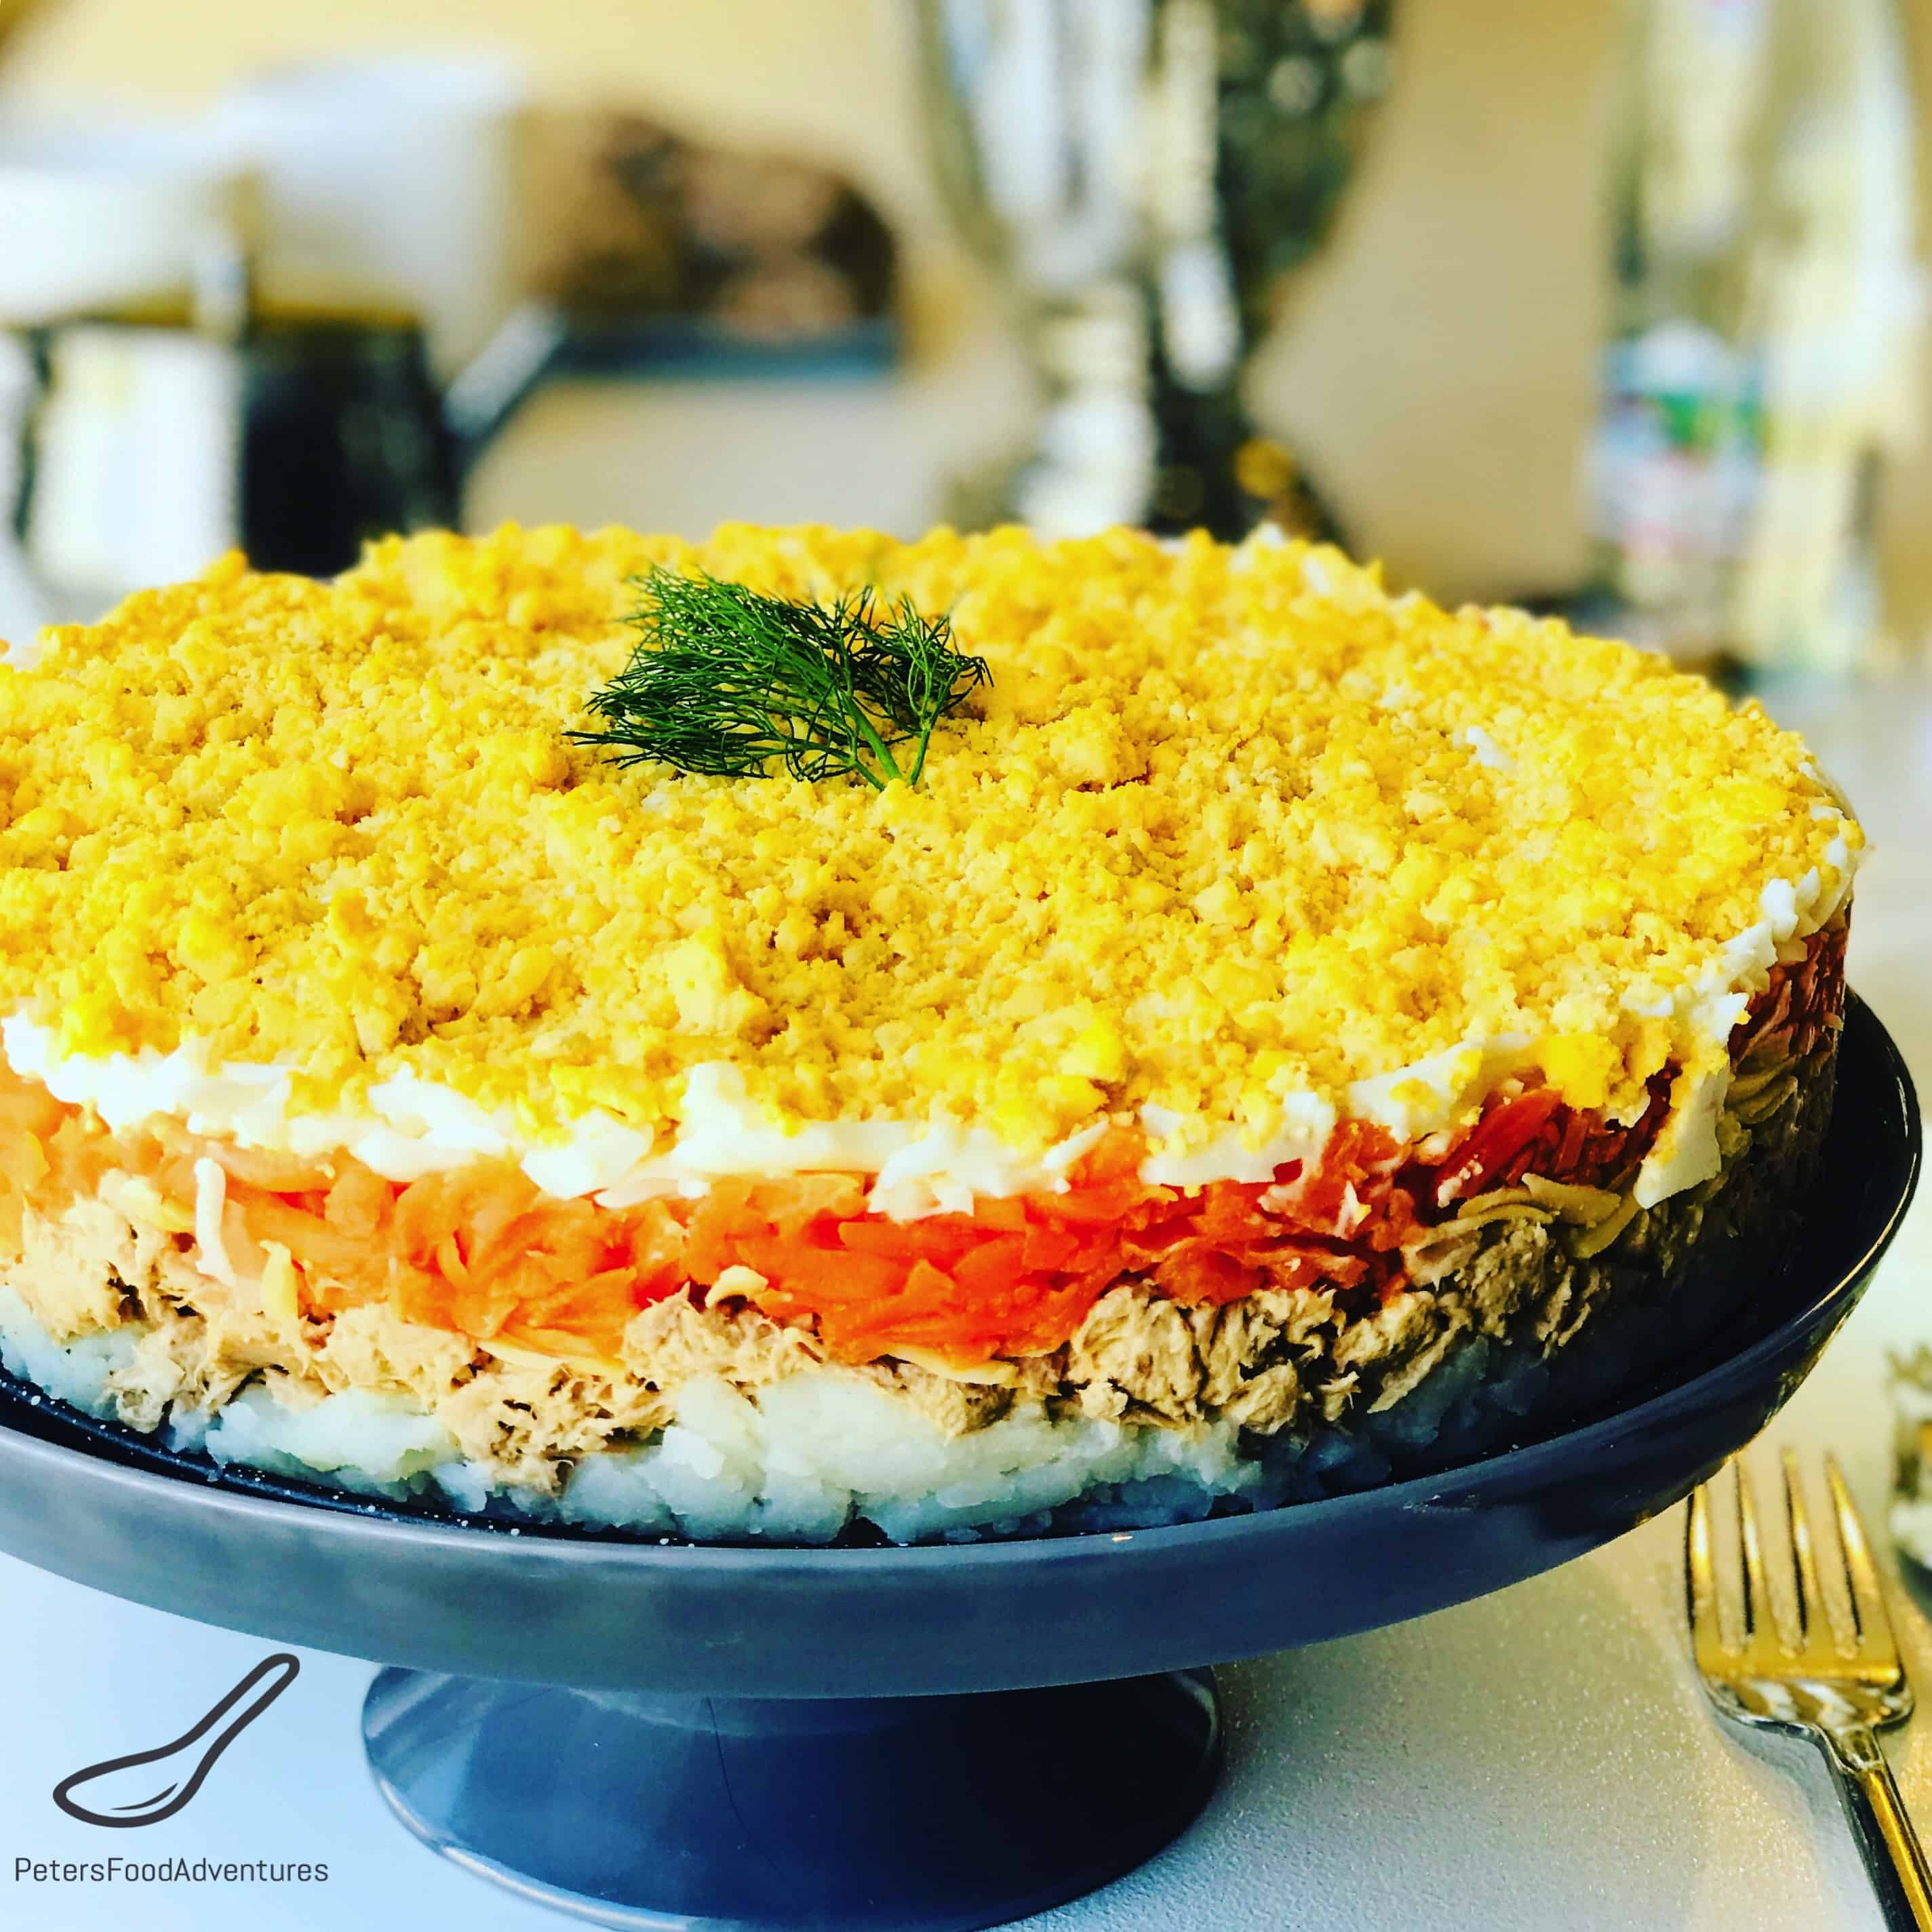 Mimosa Salad - 6 classic Mimosa salad recipes with canned food 40